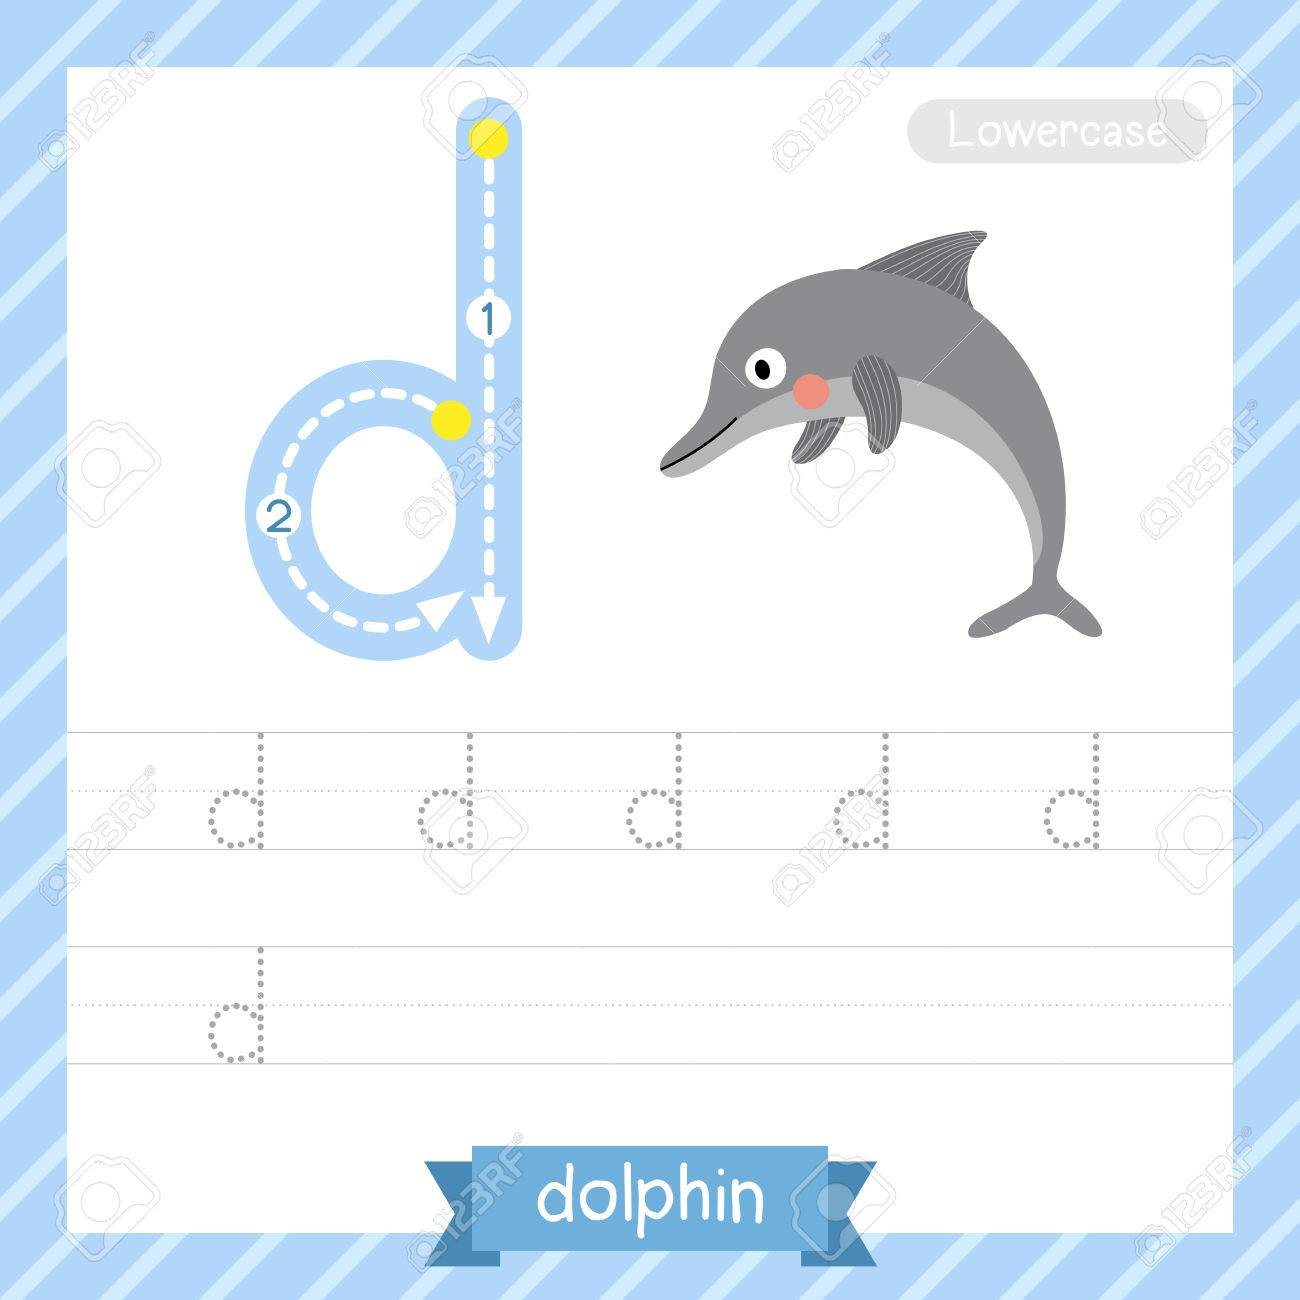 Letter D Lowercase Tracing Practice Worksheet With Dolphin For